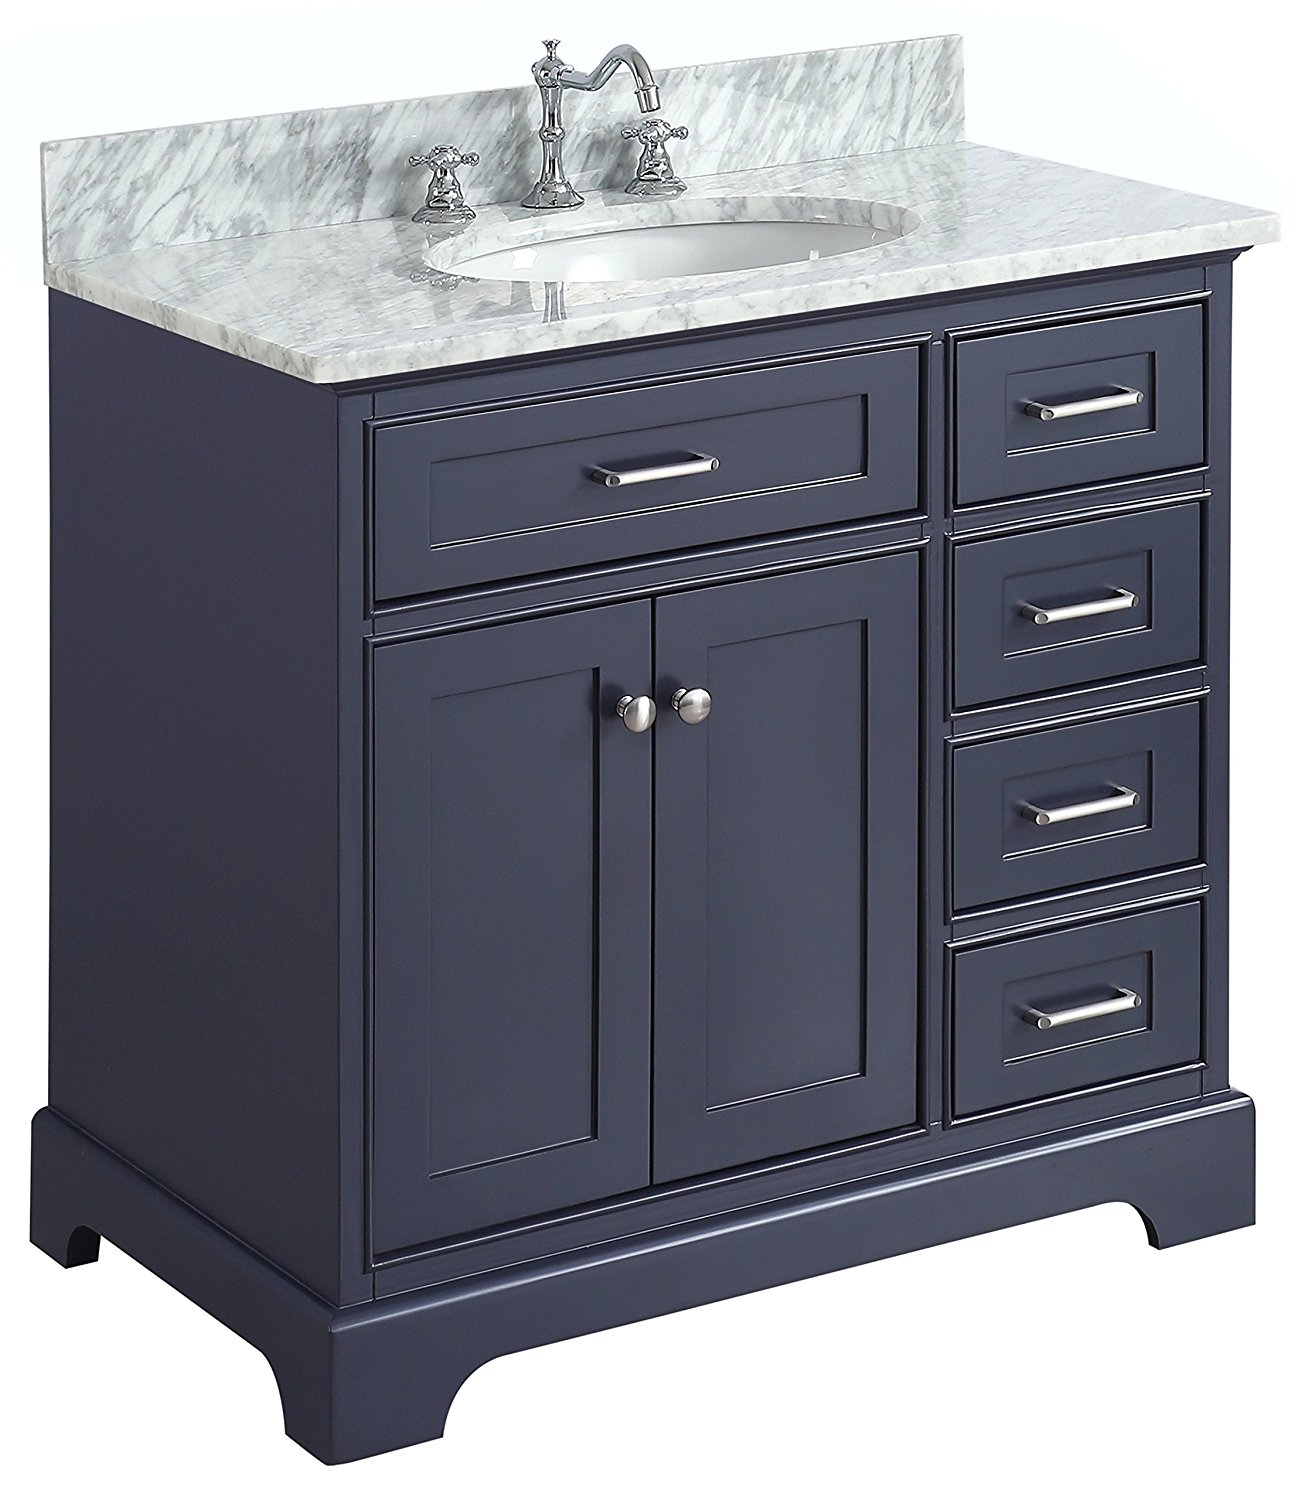 Cheap 36 X 19 Bathroom Vanity, find 36 X 19 Bathroom Vanity deals on on 36 x 19 table, 36 inch bathroom vanity, laminate bathroom vanity, cream bathroom vanity, 30 x 16 bathroom vanity, hazelnut glaze bathroom vanity, 19 inch deep bathroom vanity, 19 in bathroom vanity, 18 deep bathroom vanity, white bathroom vanity,